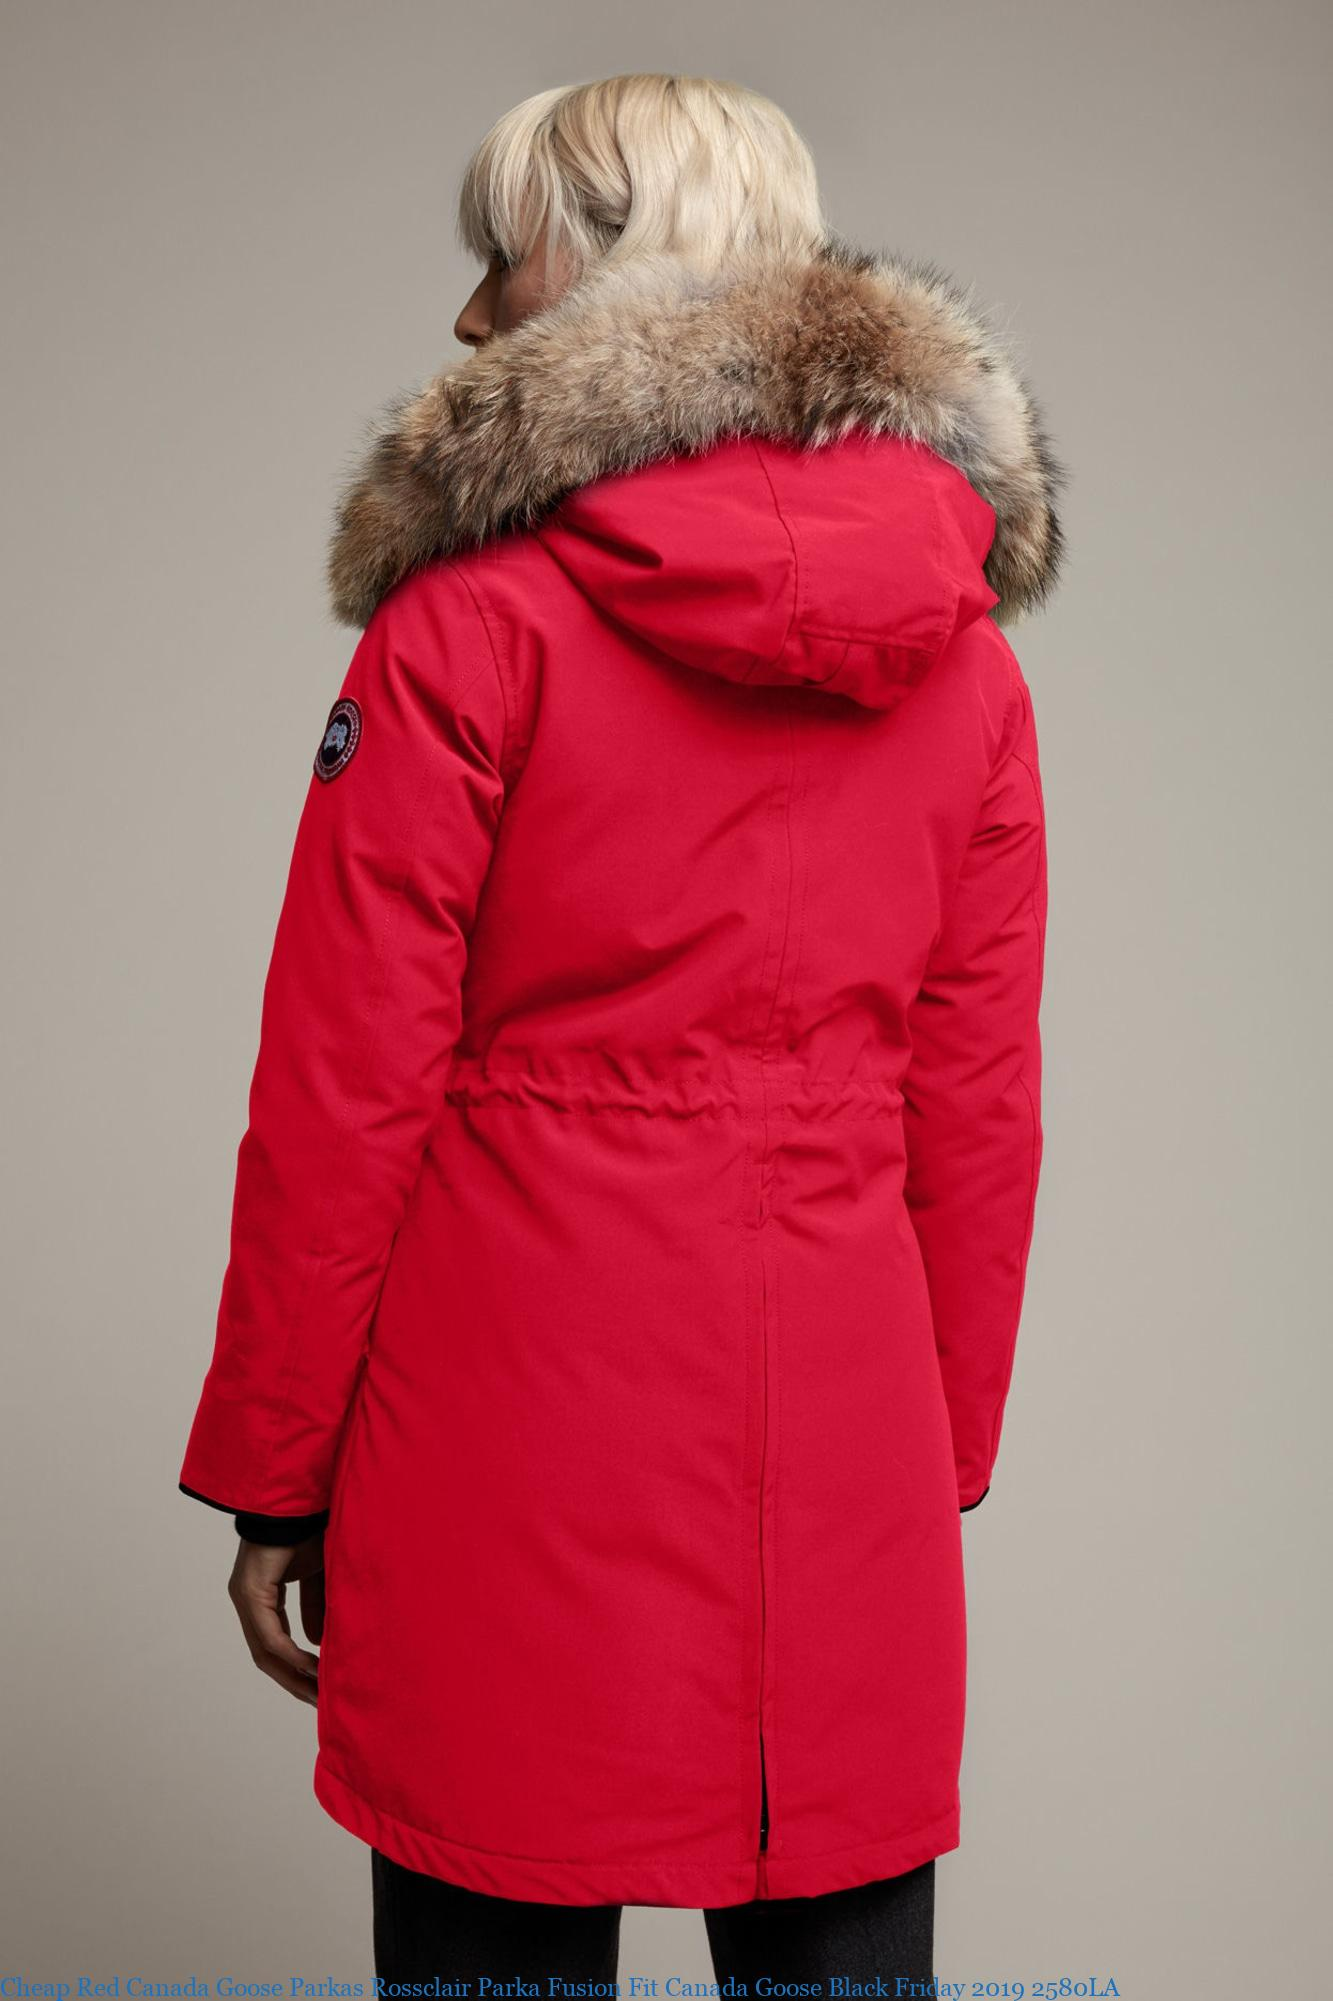 Cheap Red Canada Goose Parkas Rossclair Parka Fusion Fit Canada